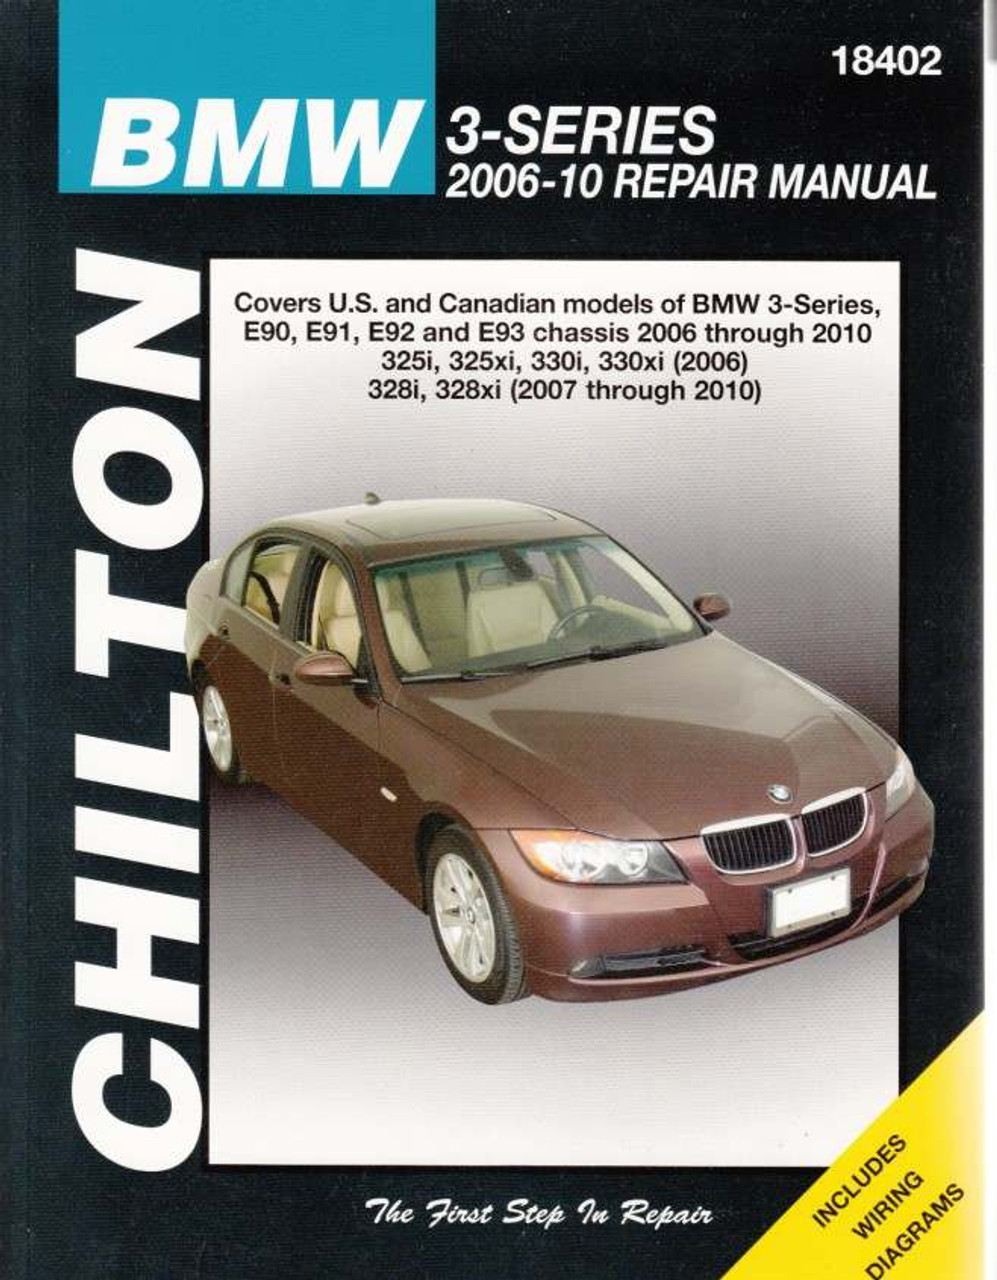 bmw 325d owners manual browse manual guides u2022 rh trufflefries co 2004 BMW X5 2013 BMW F30